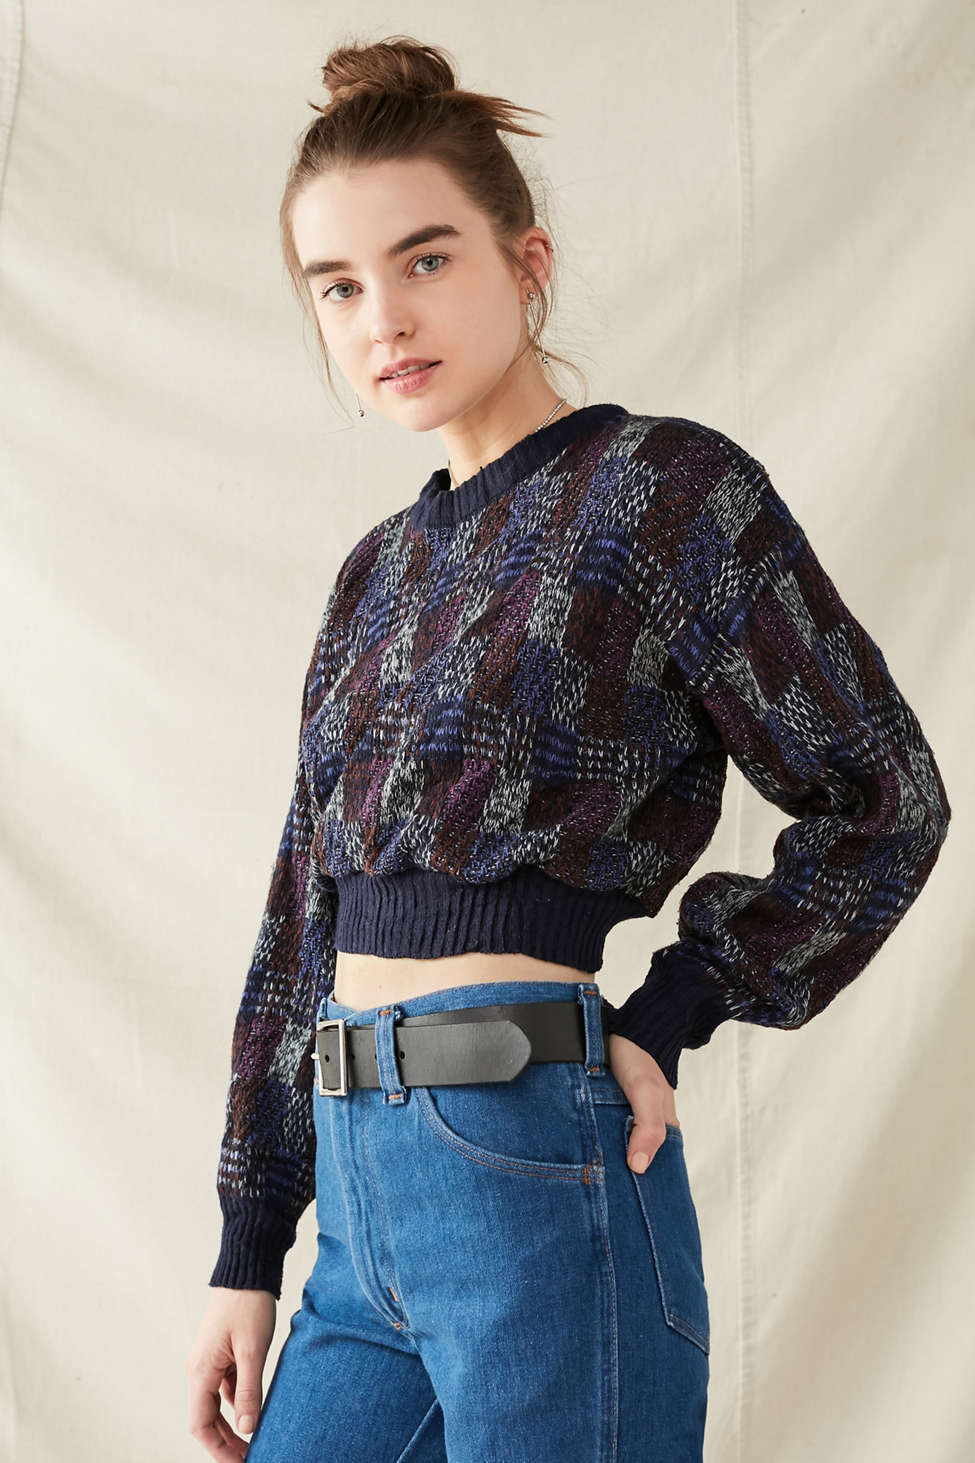 Slide View: 4: Urban Renewal Recycled Printed Cropped Sweater